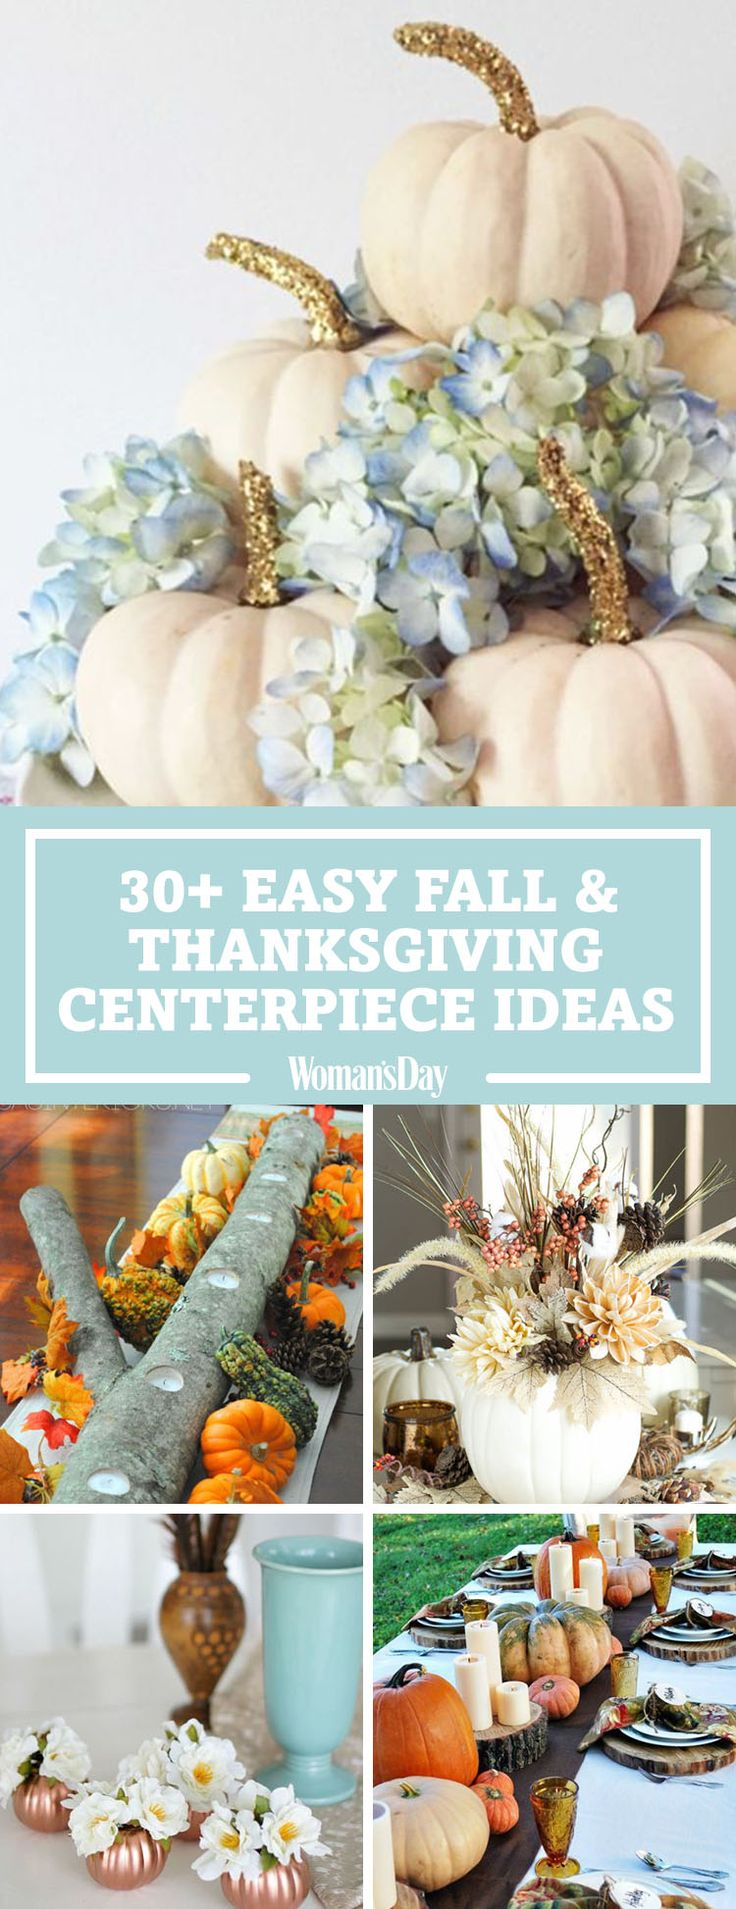 946 best thanksgiving and fall images on pinterest Thanksgiving table decorations homemade